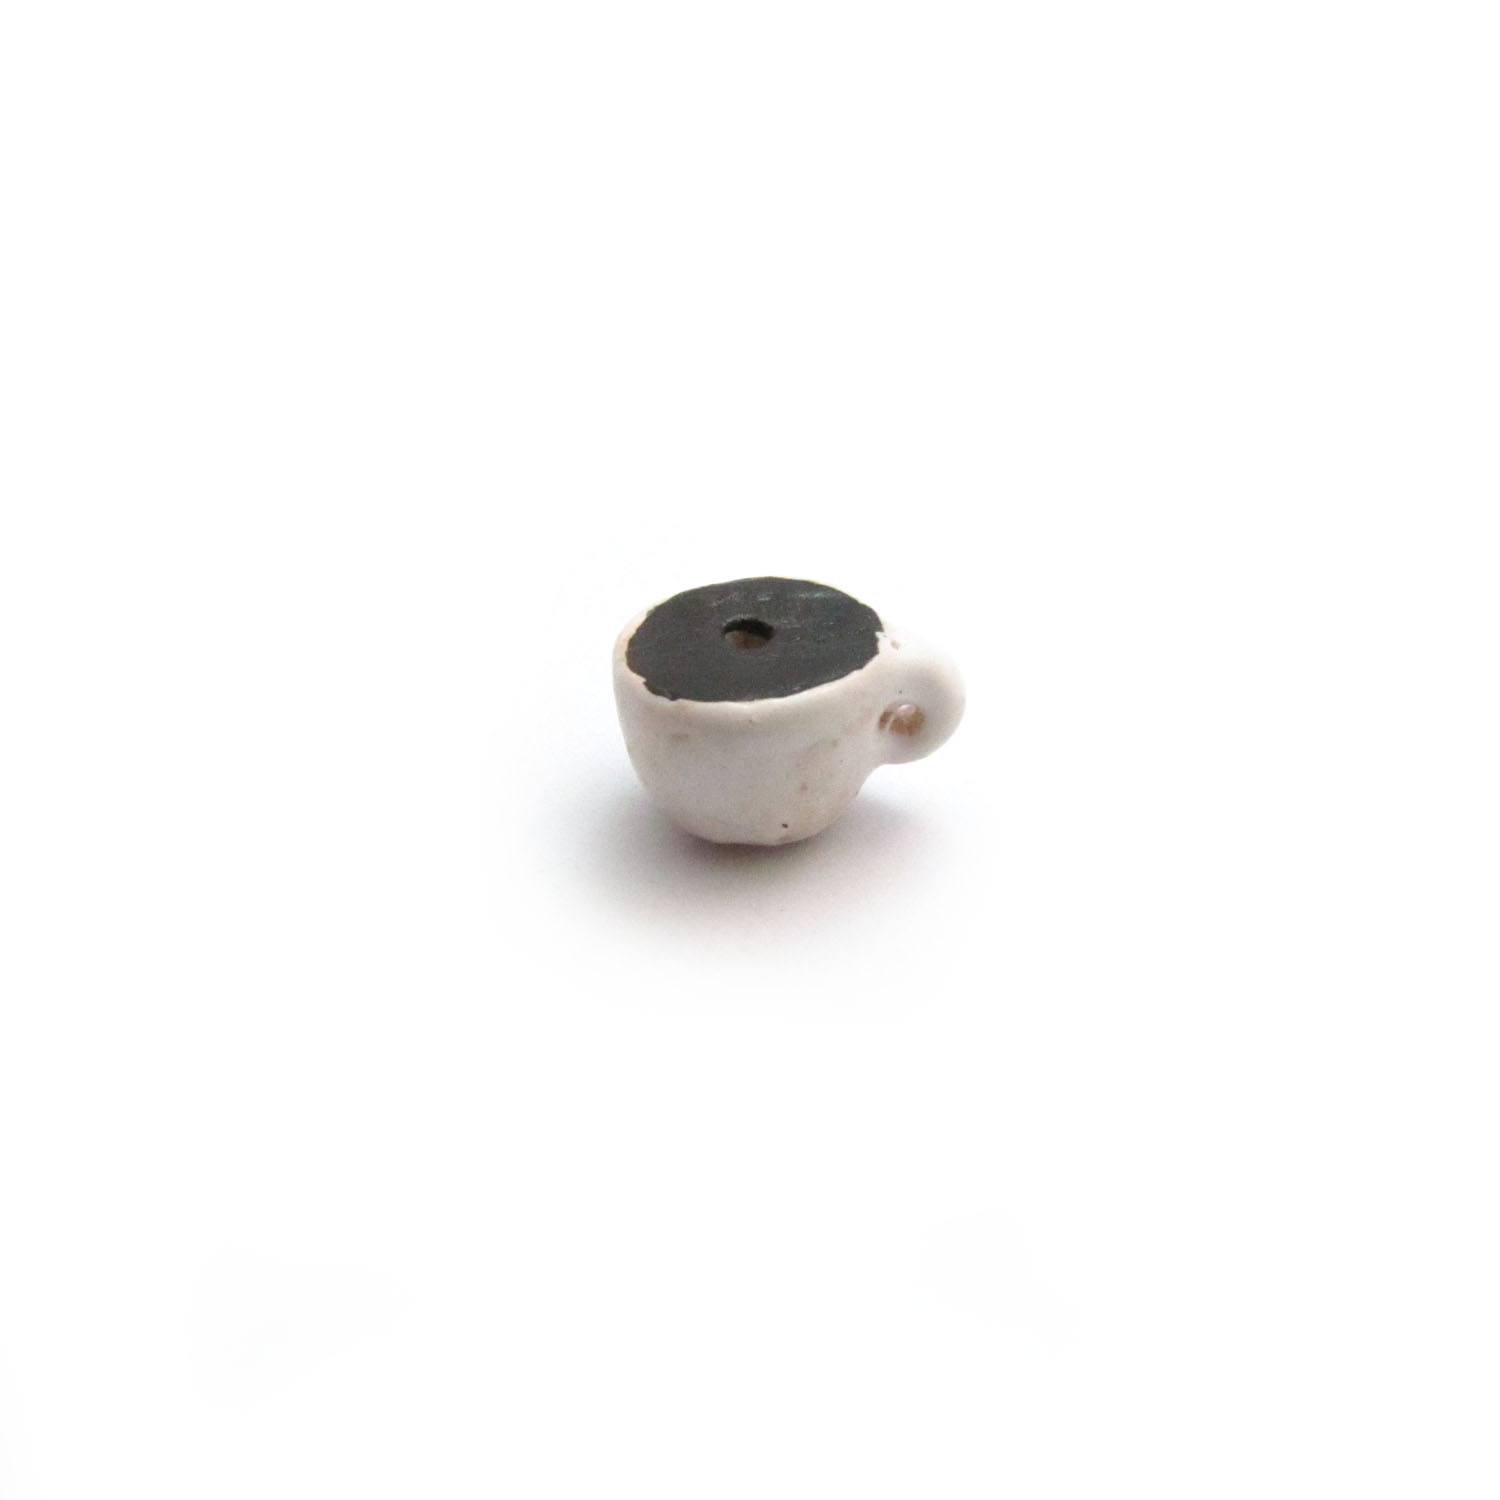 Coffee Cup ceramic beads large and small